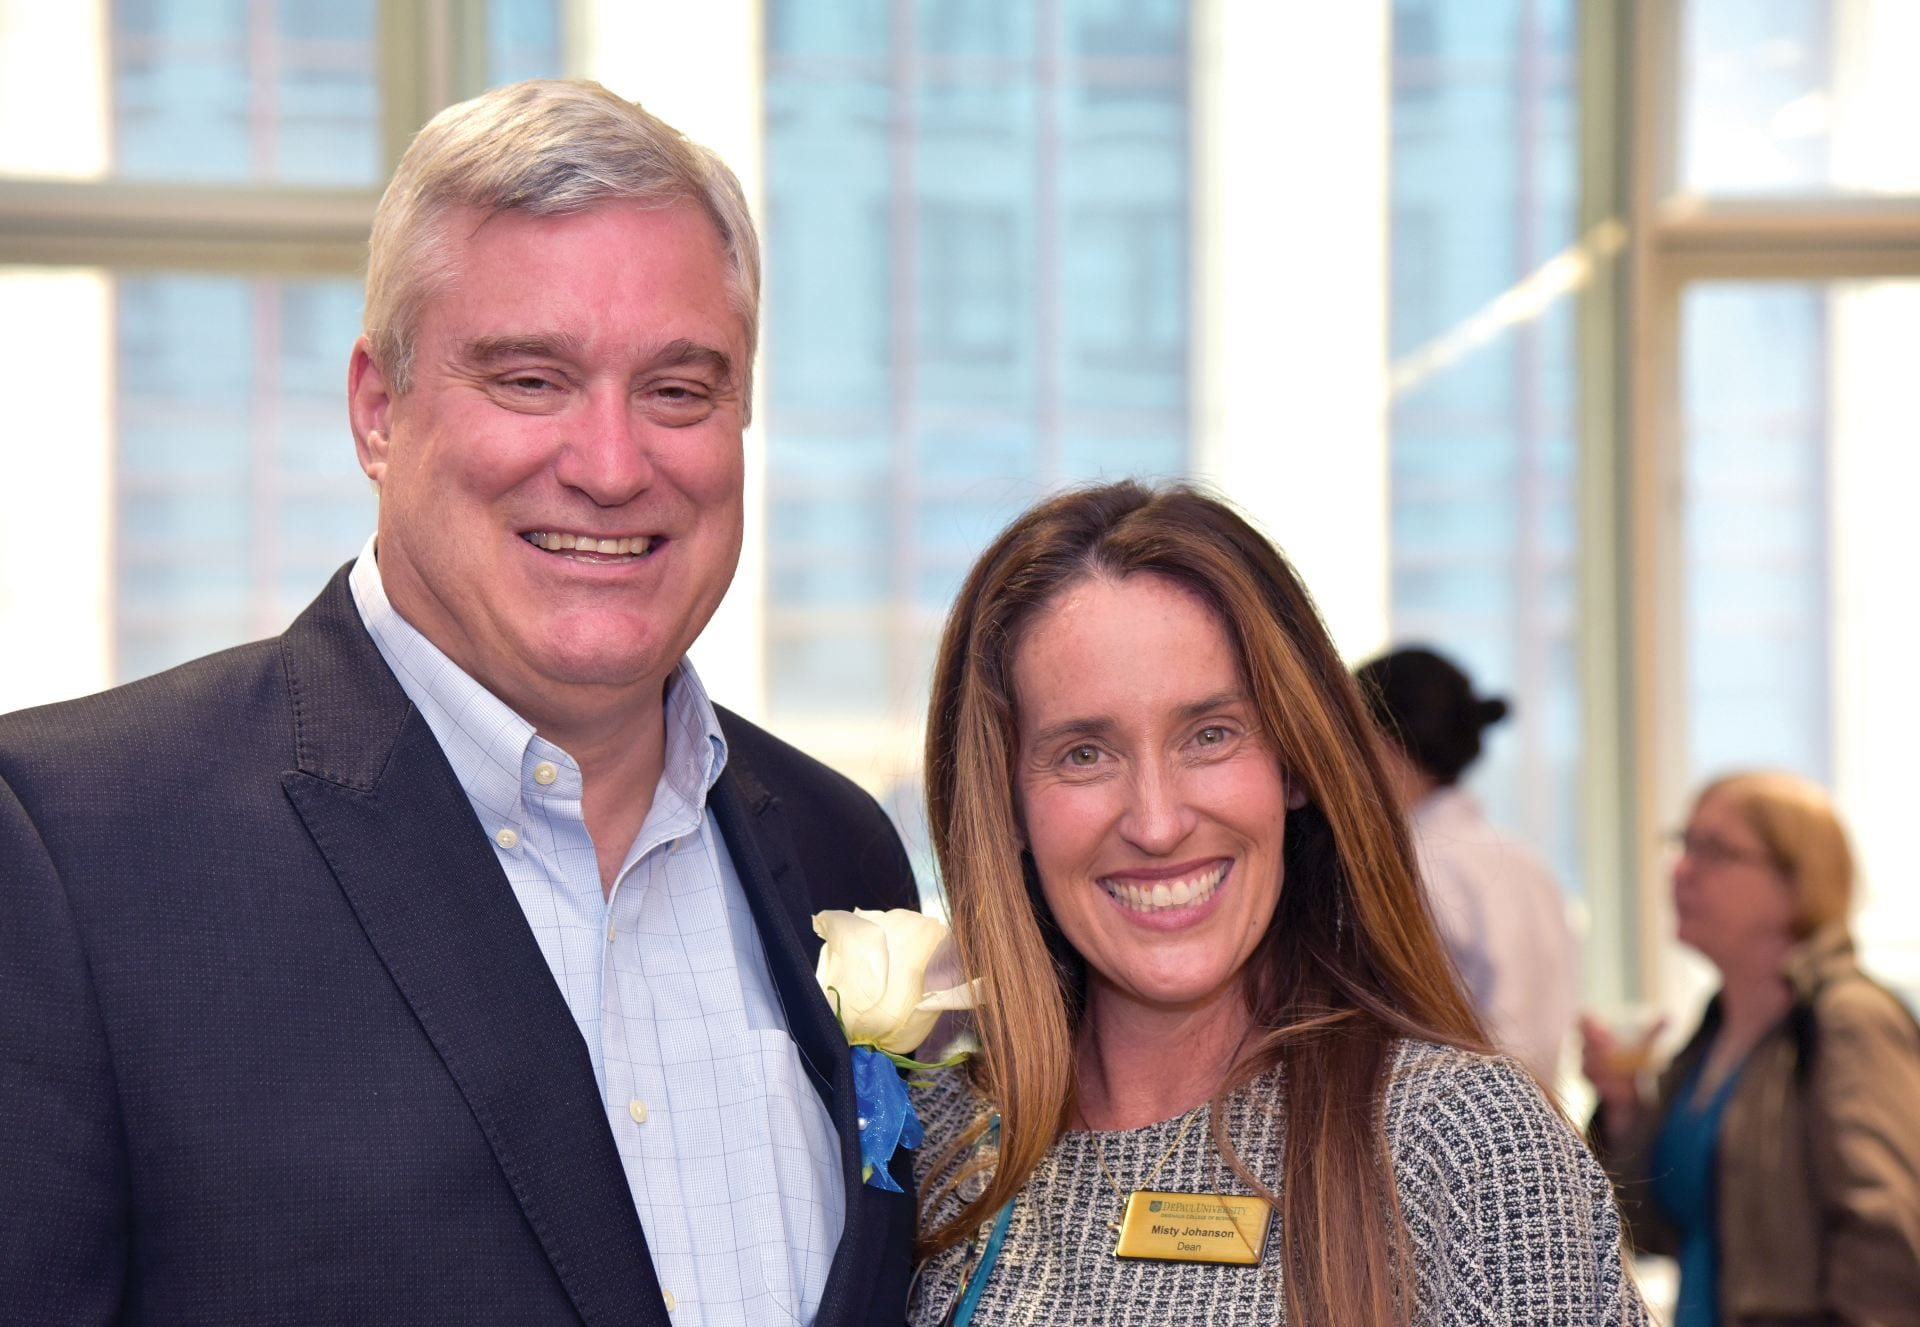 Management Chair Dan Heiser celebrates his appointment as St. Norbert College business dean with DePaul Business Dean Misty Johanson.